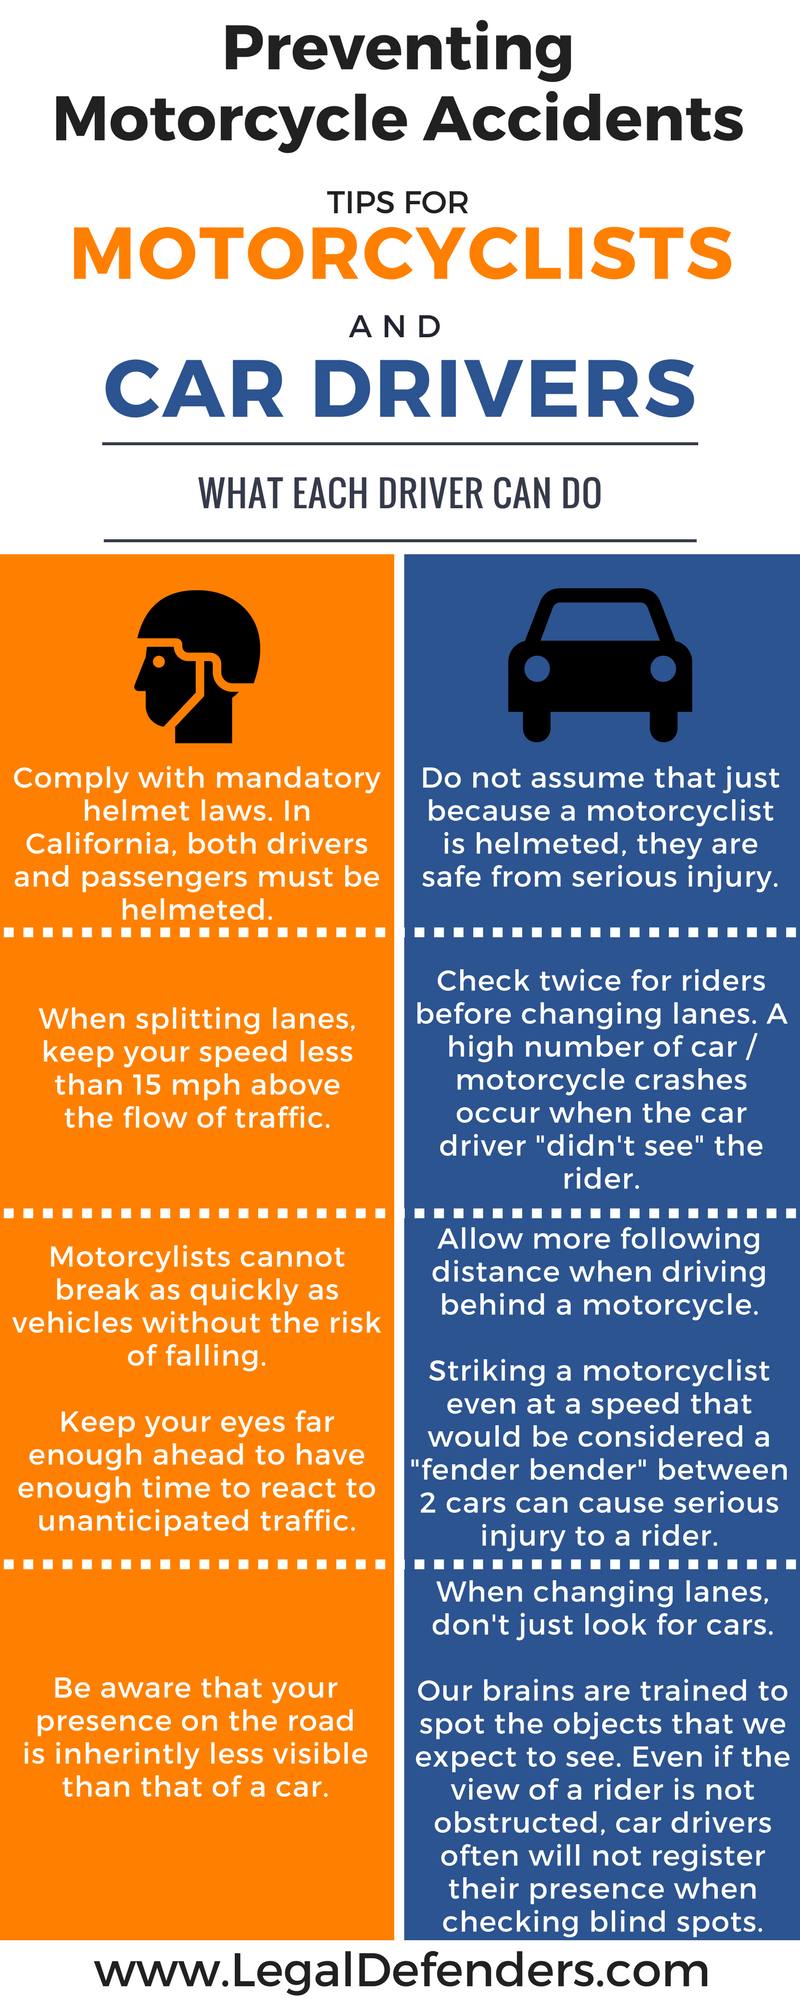 Motorcycle Accident Safety Infographic